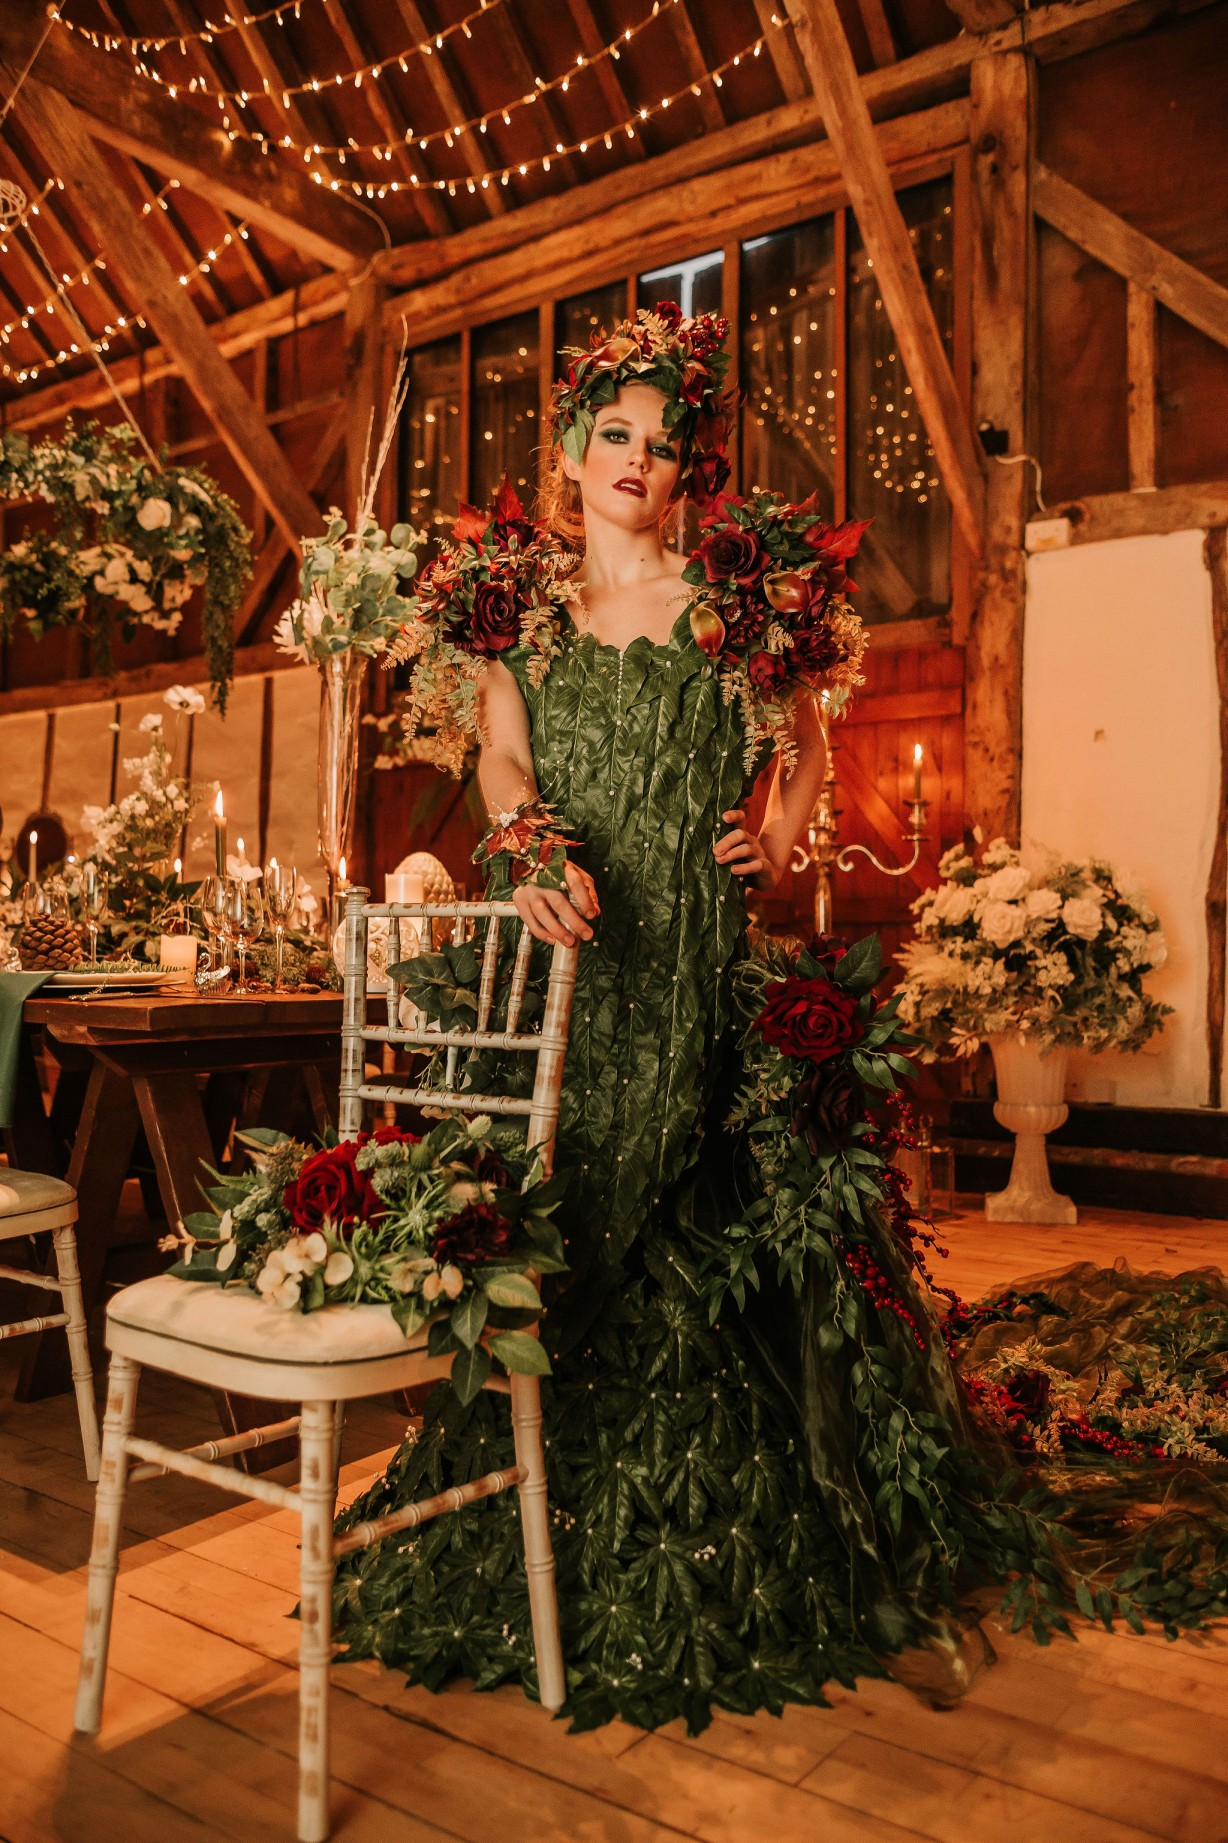 enchanting winter wedding - artistic bridal photoshoot - extravagant bridal look - alternative bridalwear